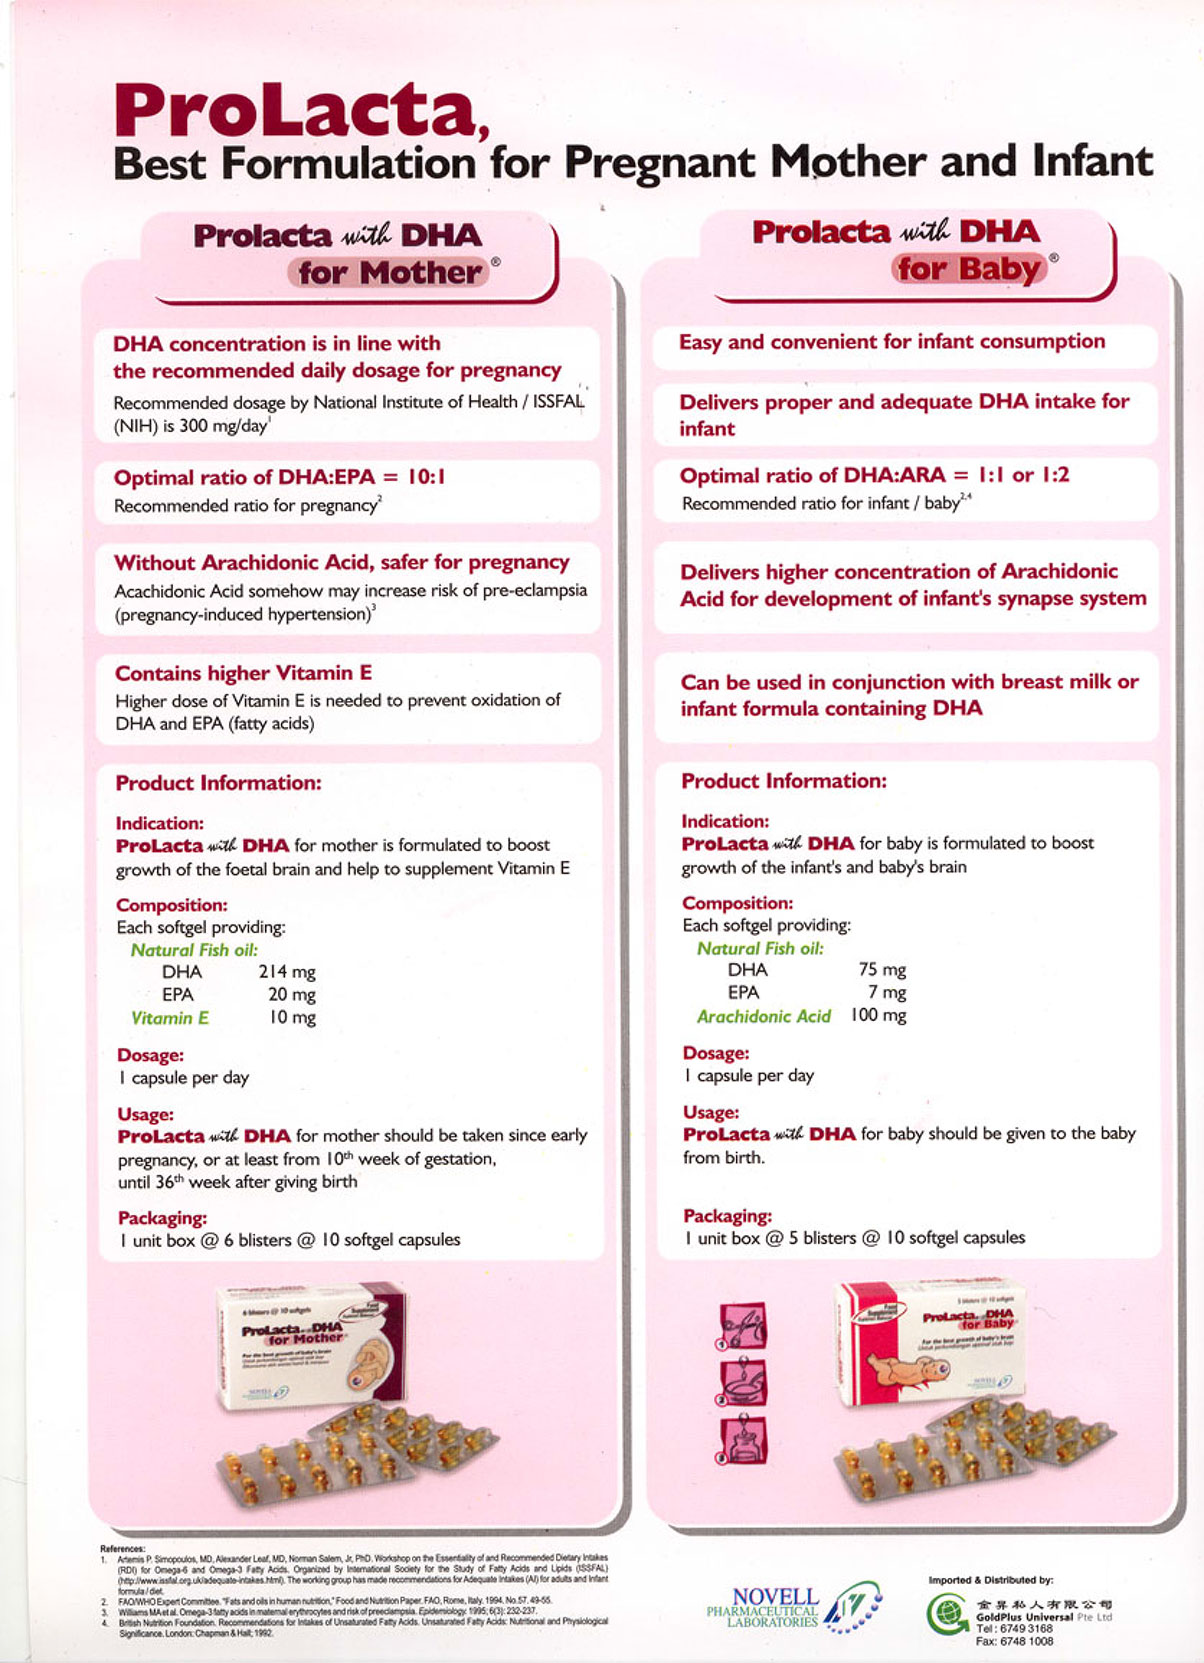 Home / Products / Fertility & Pregnancy / Pregnancy / Prolacta with DHA for Mother